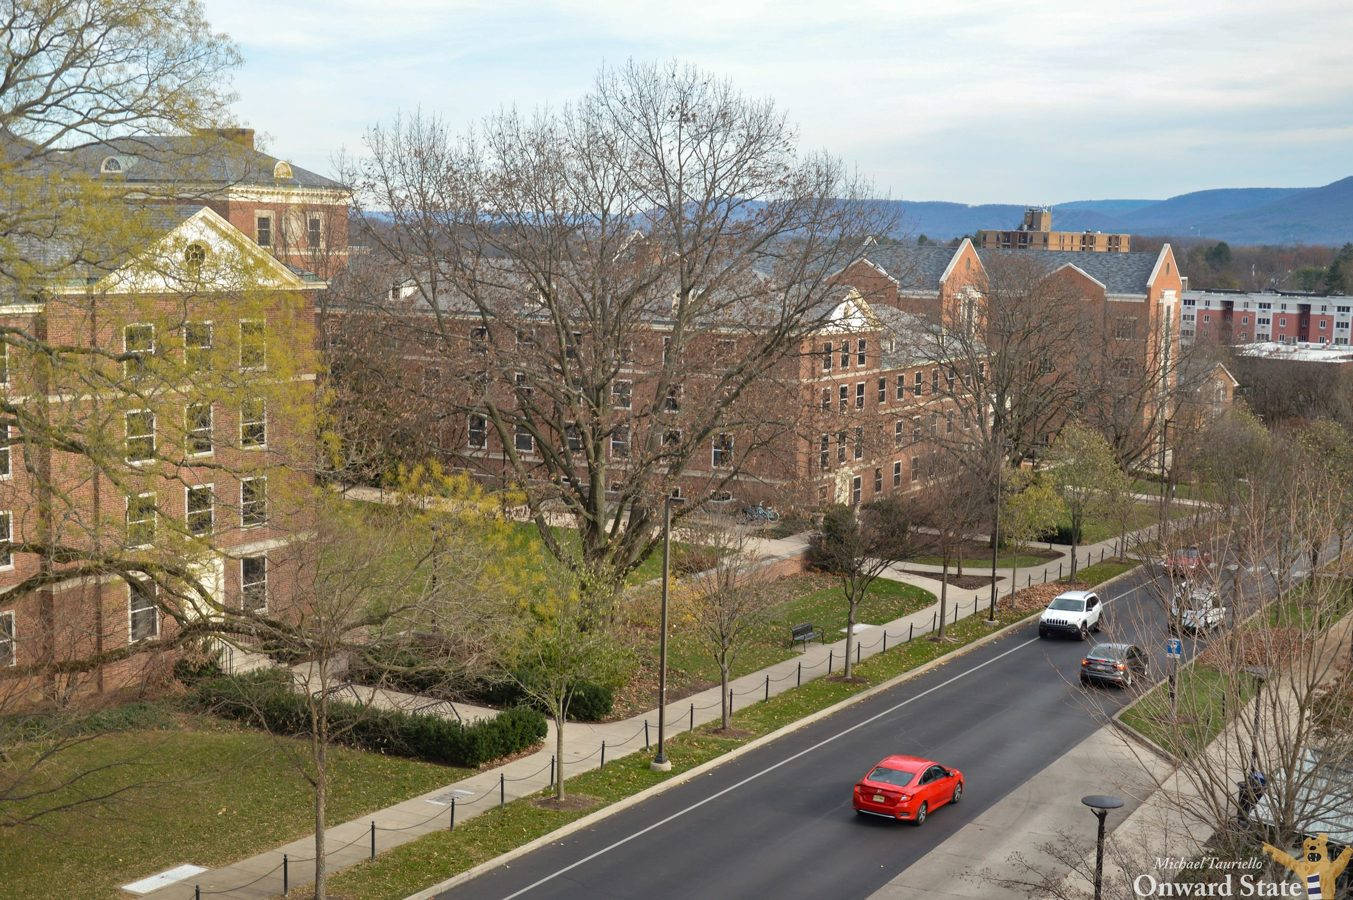 Penn State Reports 73 More COVID-19 Cases...